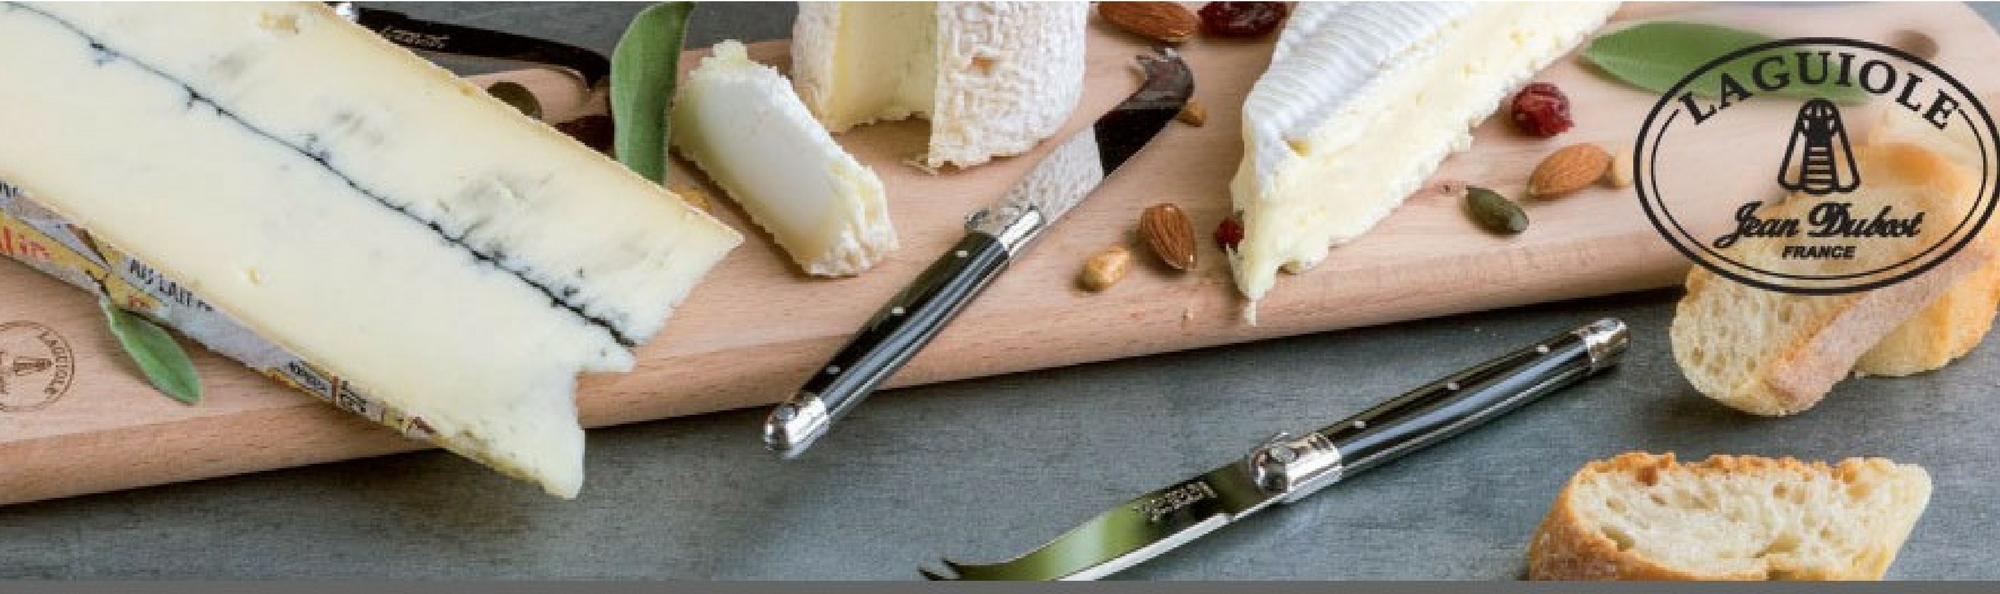 Jean Dubost French Cutlery Laguiole